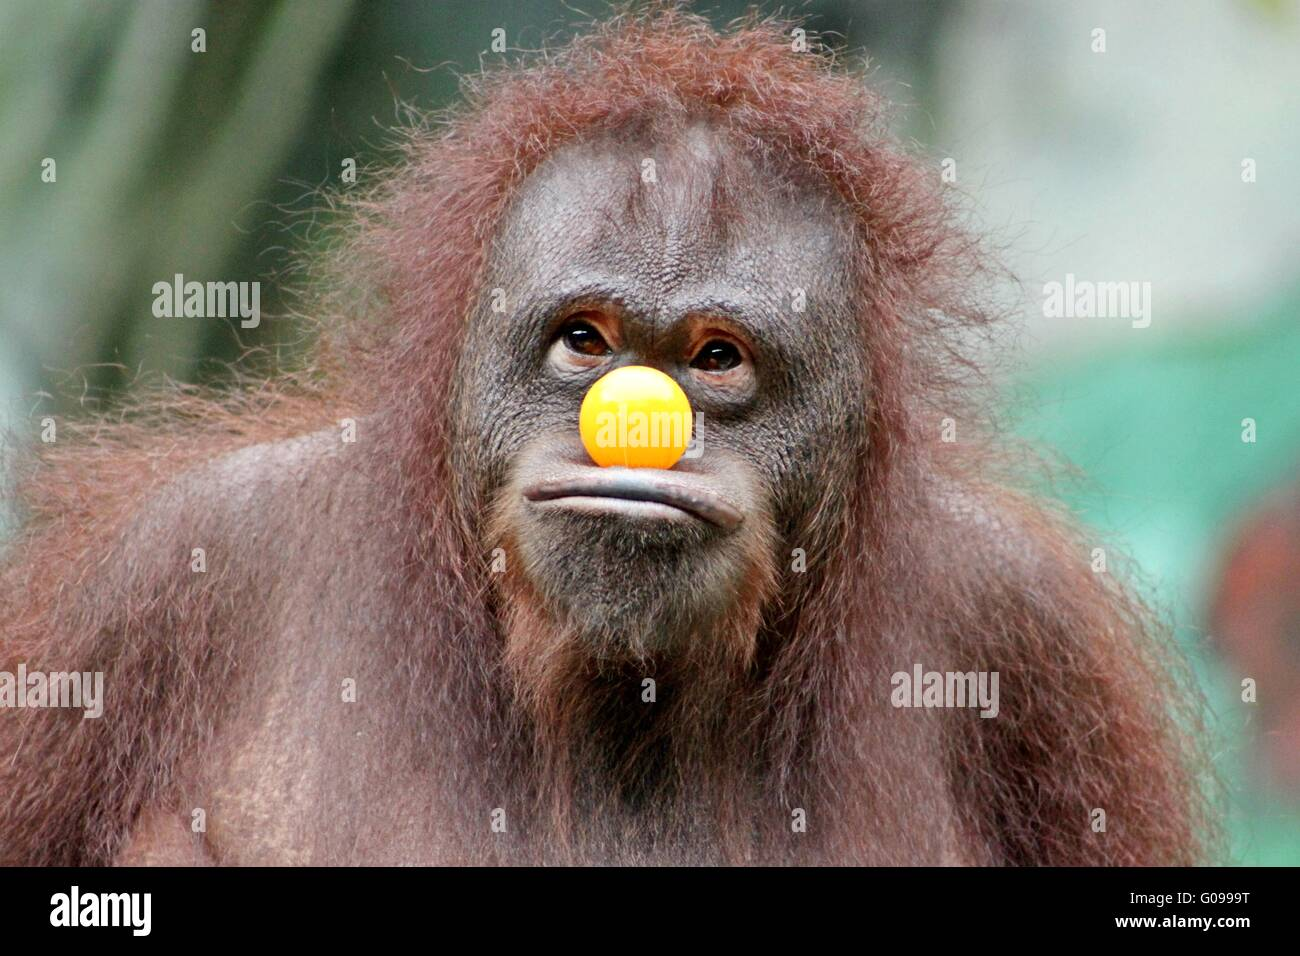 Monkey - Stock Image